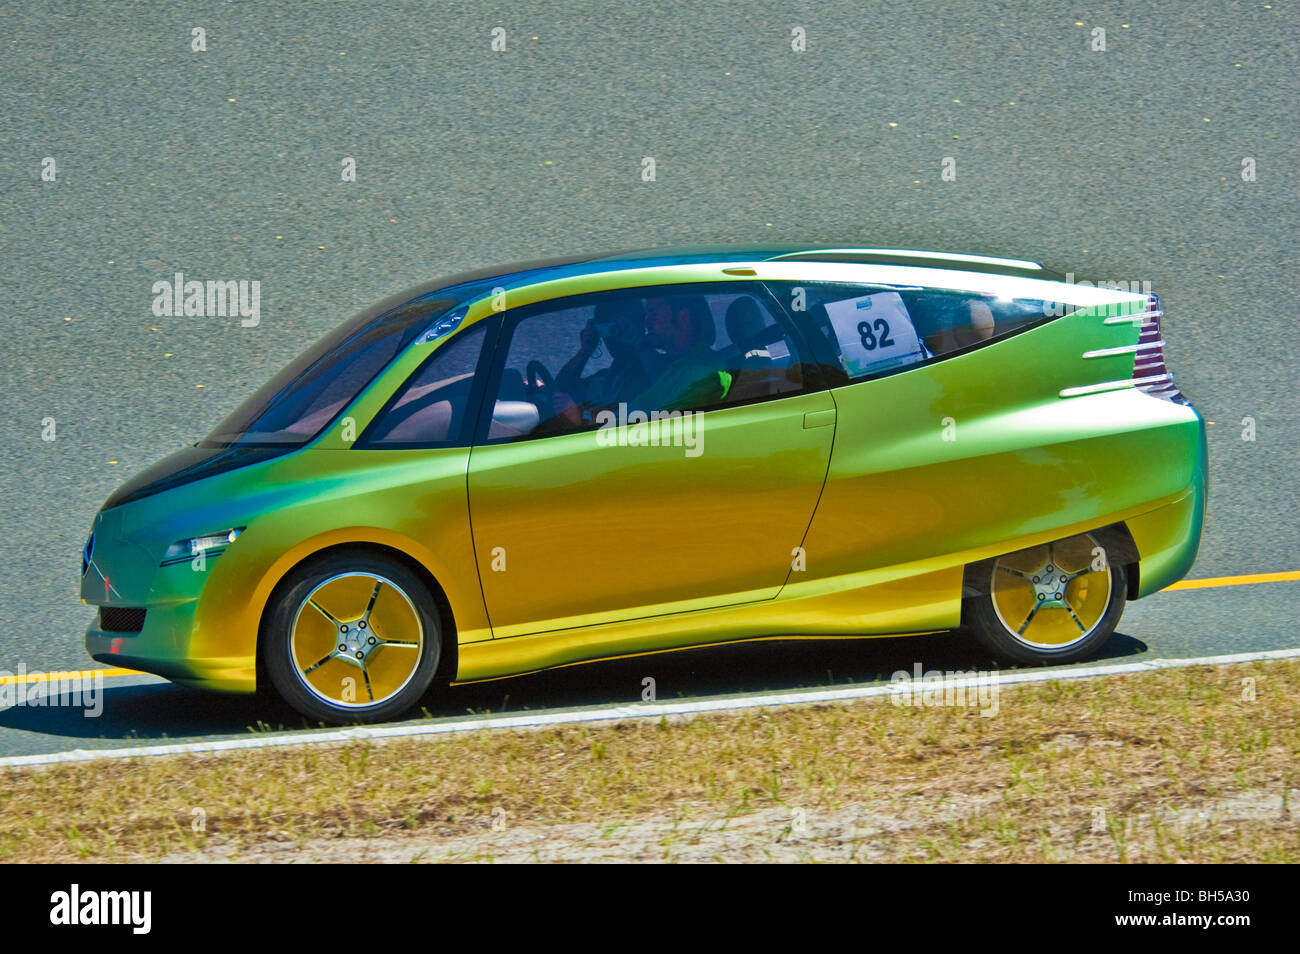 https://c8.alamy.com/comp/BH5A30/mercedes-benz-bionic-car-on-2006-michelin-challenge-bibendum-paris-BH5A30.jpg